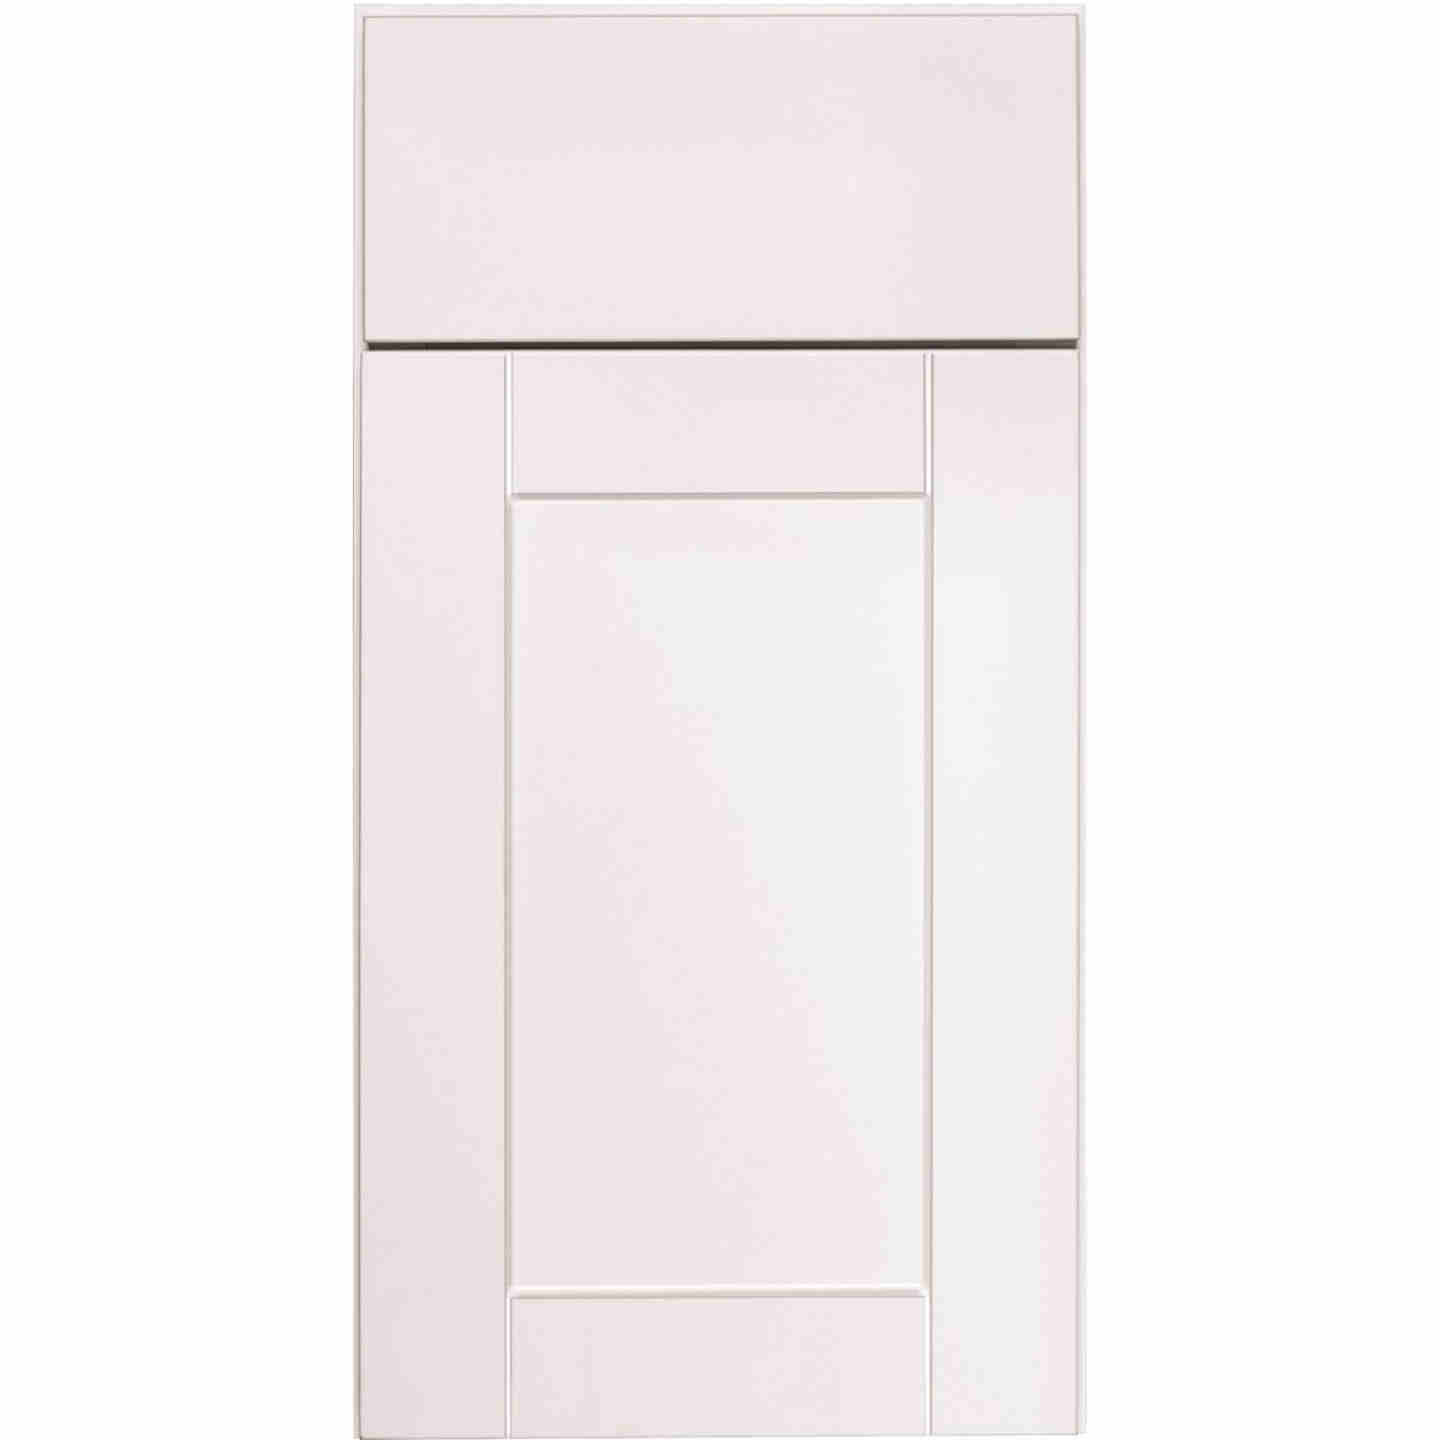 Continental Cabinets Andover Shaker 30 In. W x 15 In. H x 12 In. D White Thermofoil Bridge Wall Kitchen Cabinet Image 3